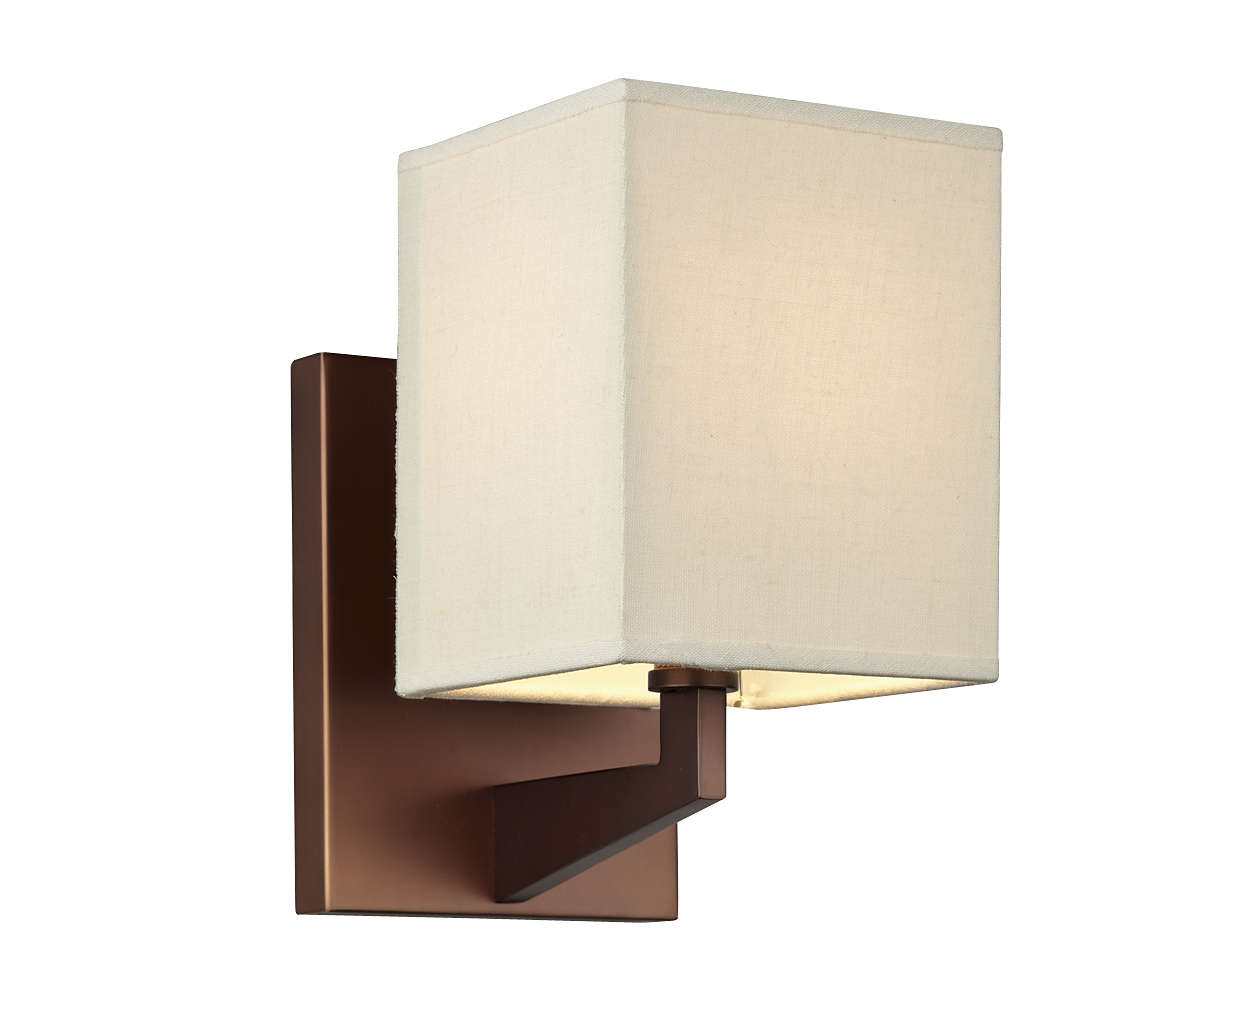 Fisher Island 1-light wall light